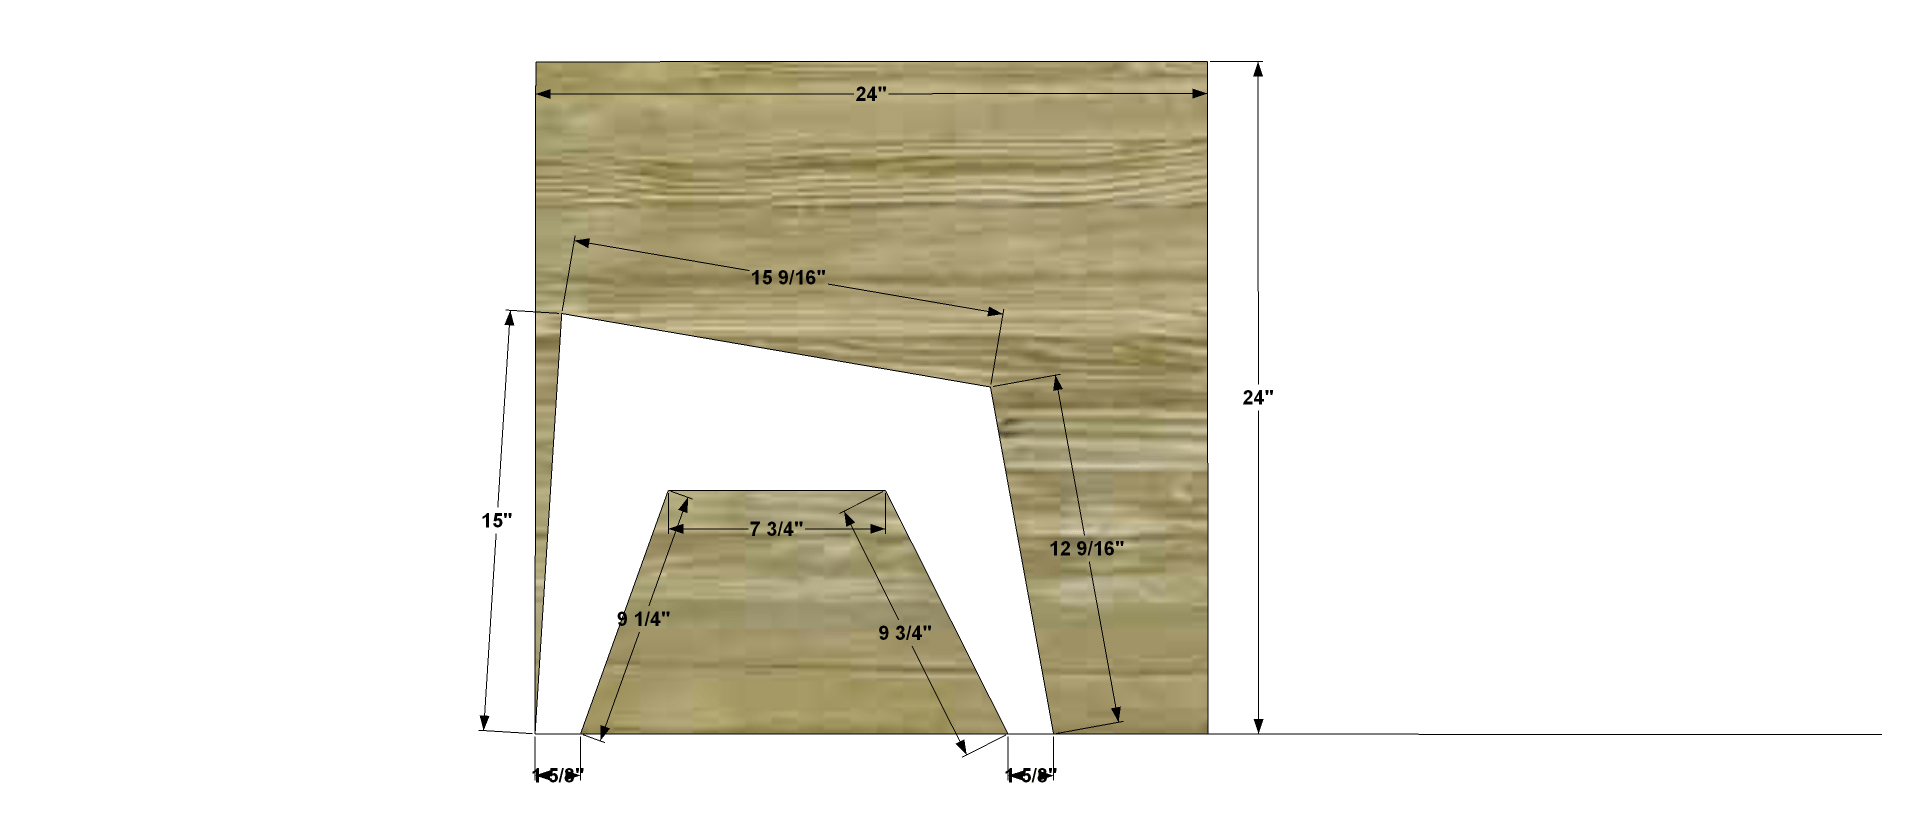 Adirondack Chair Template Free Woodworking Plans To Build A Cb2 Inspired Sawyer